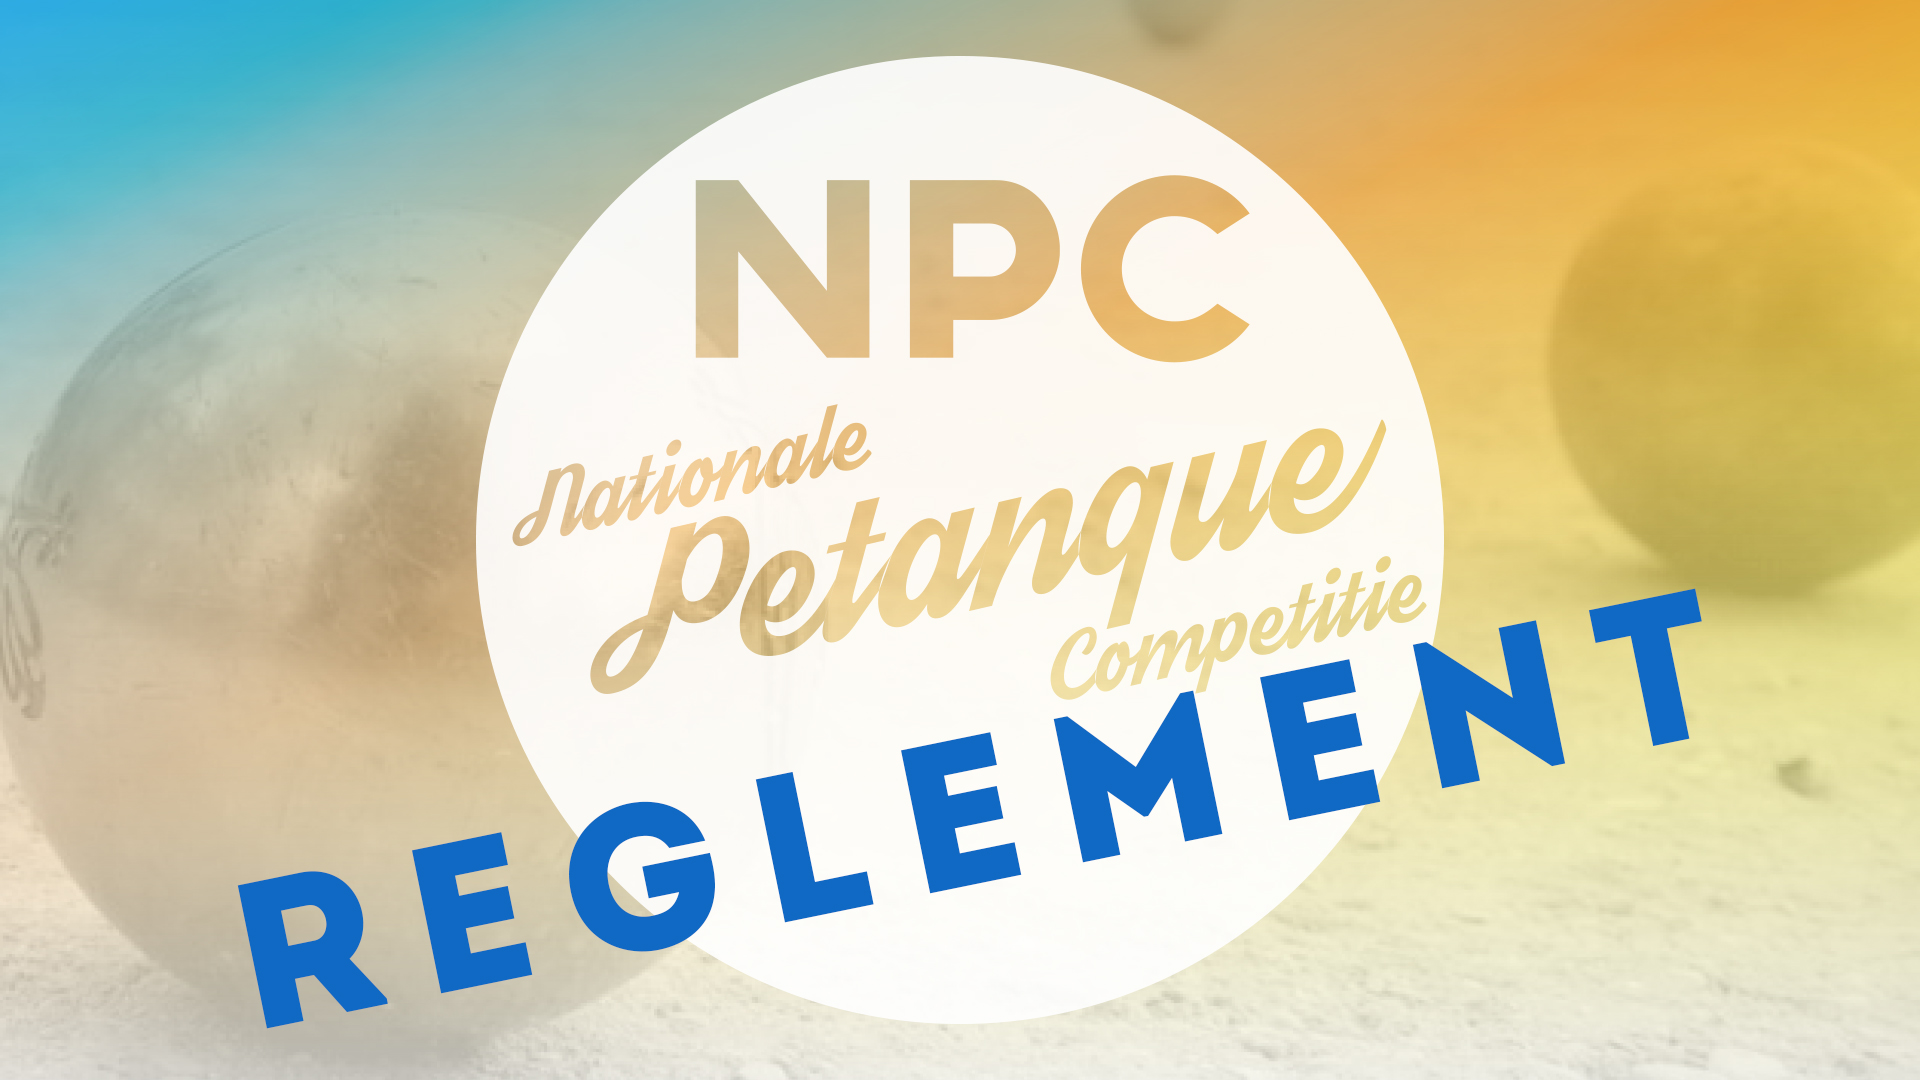 Nationale petanque competitie